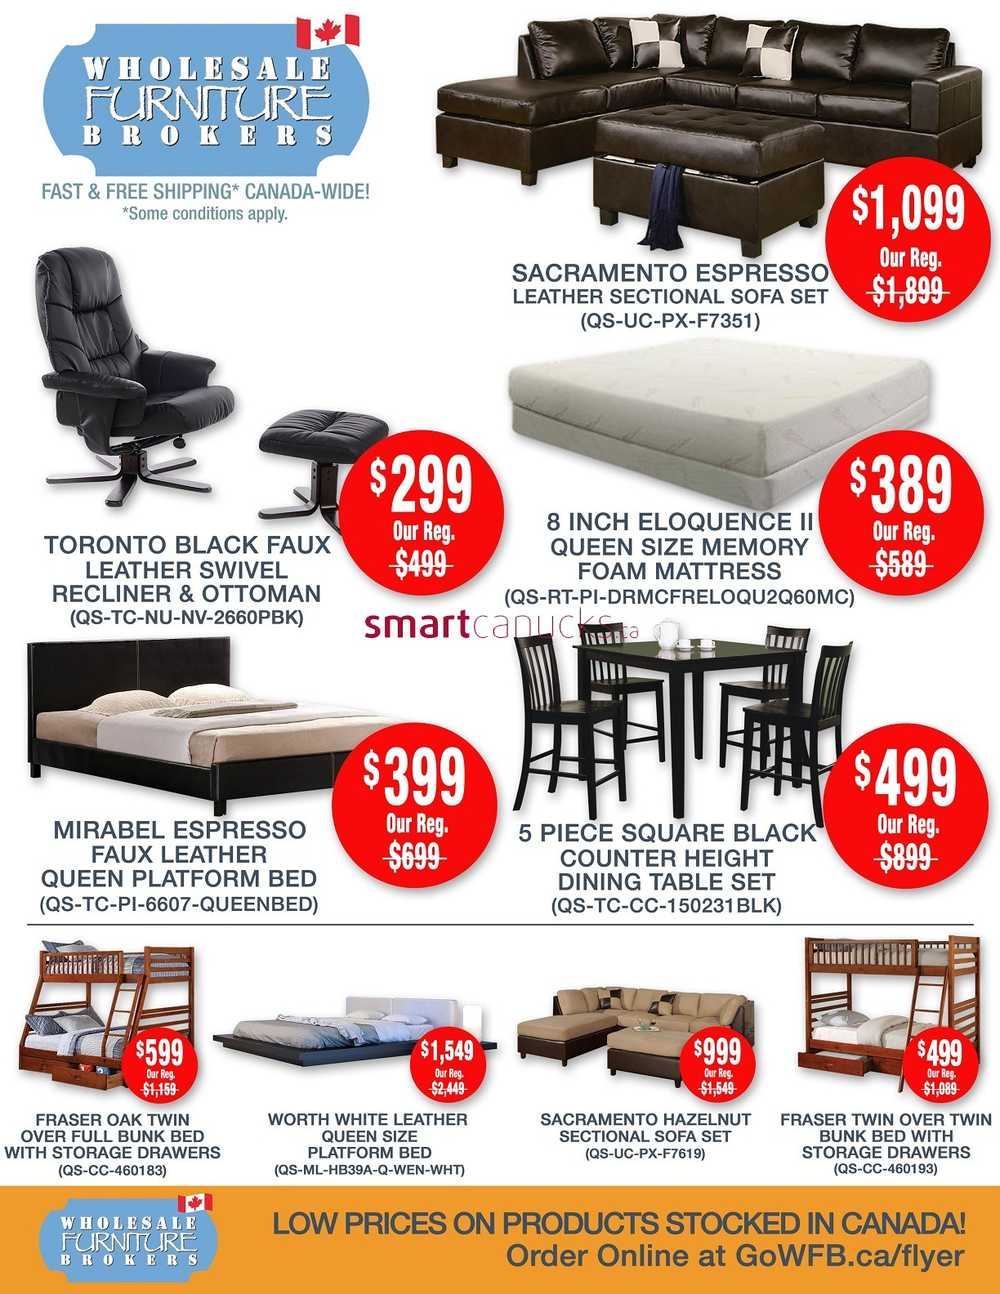 Wholesale Furniture Brokers Canada Flyers